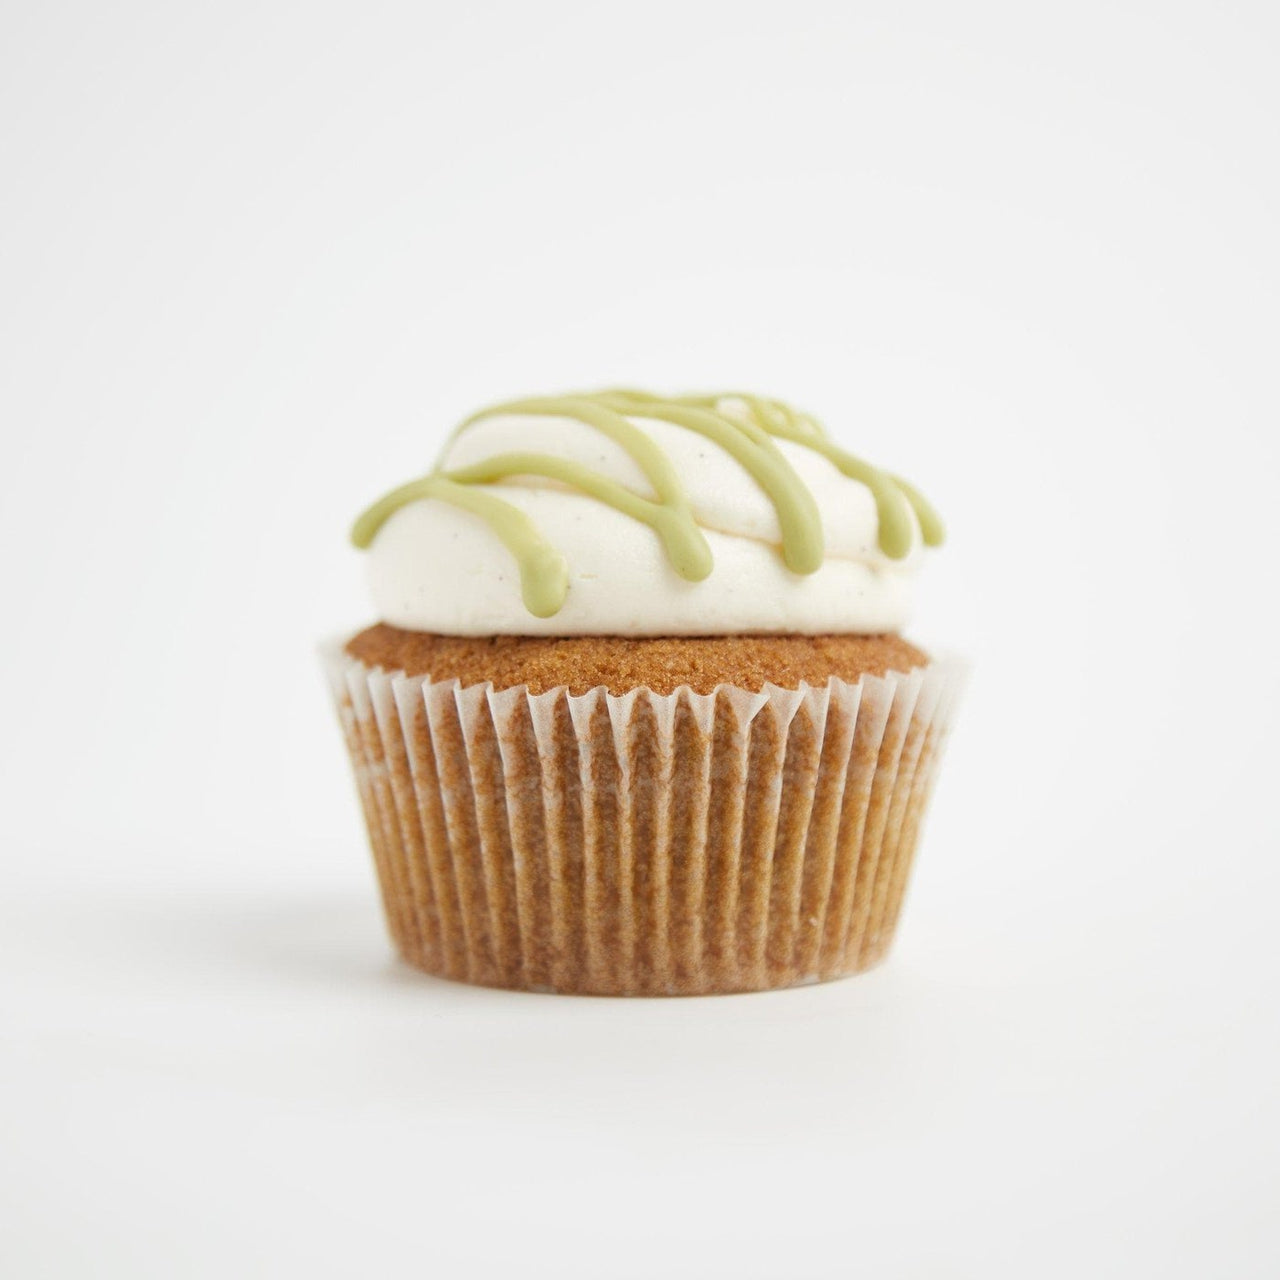 Matcha white chocolate Cupcakes by Crumbs & Doilies